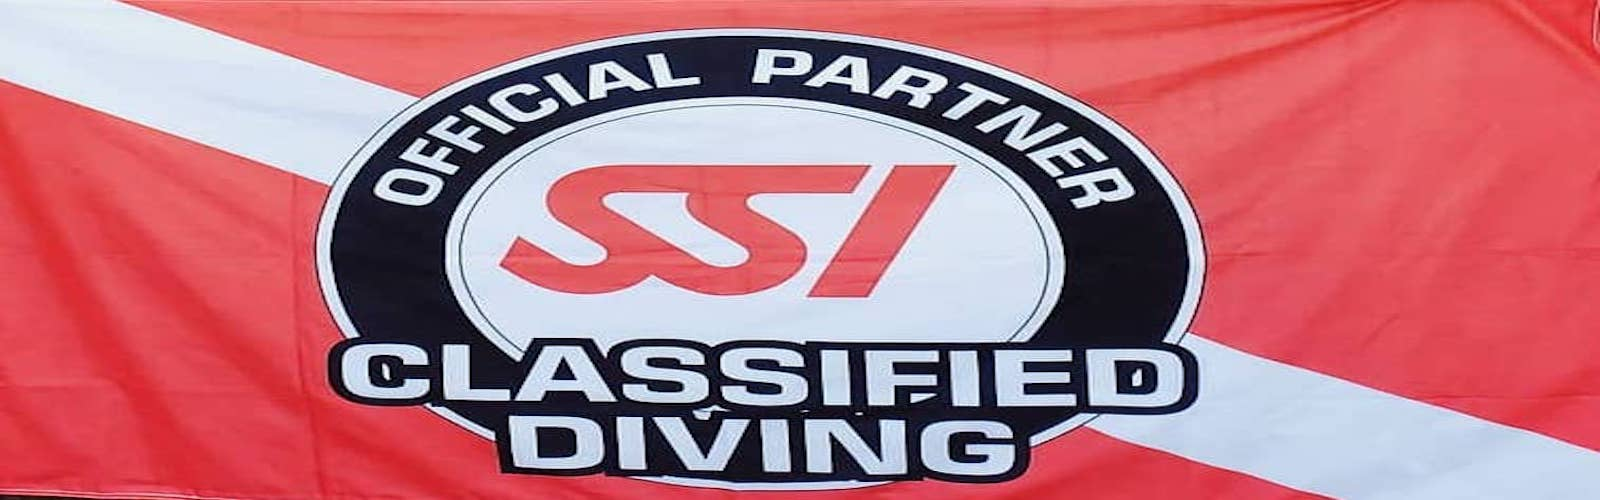 Classified Diving Flag